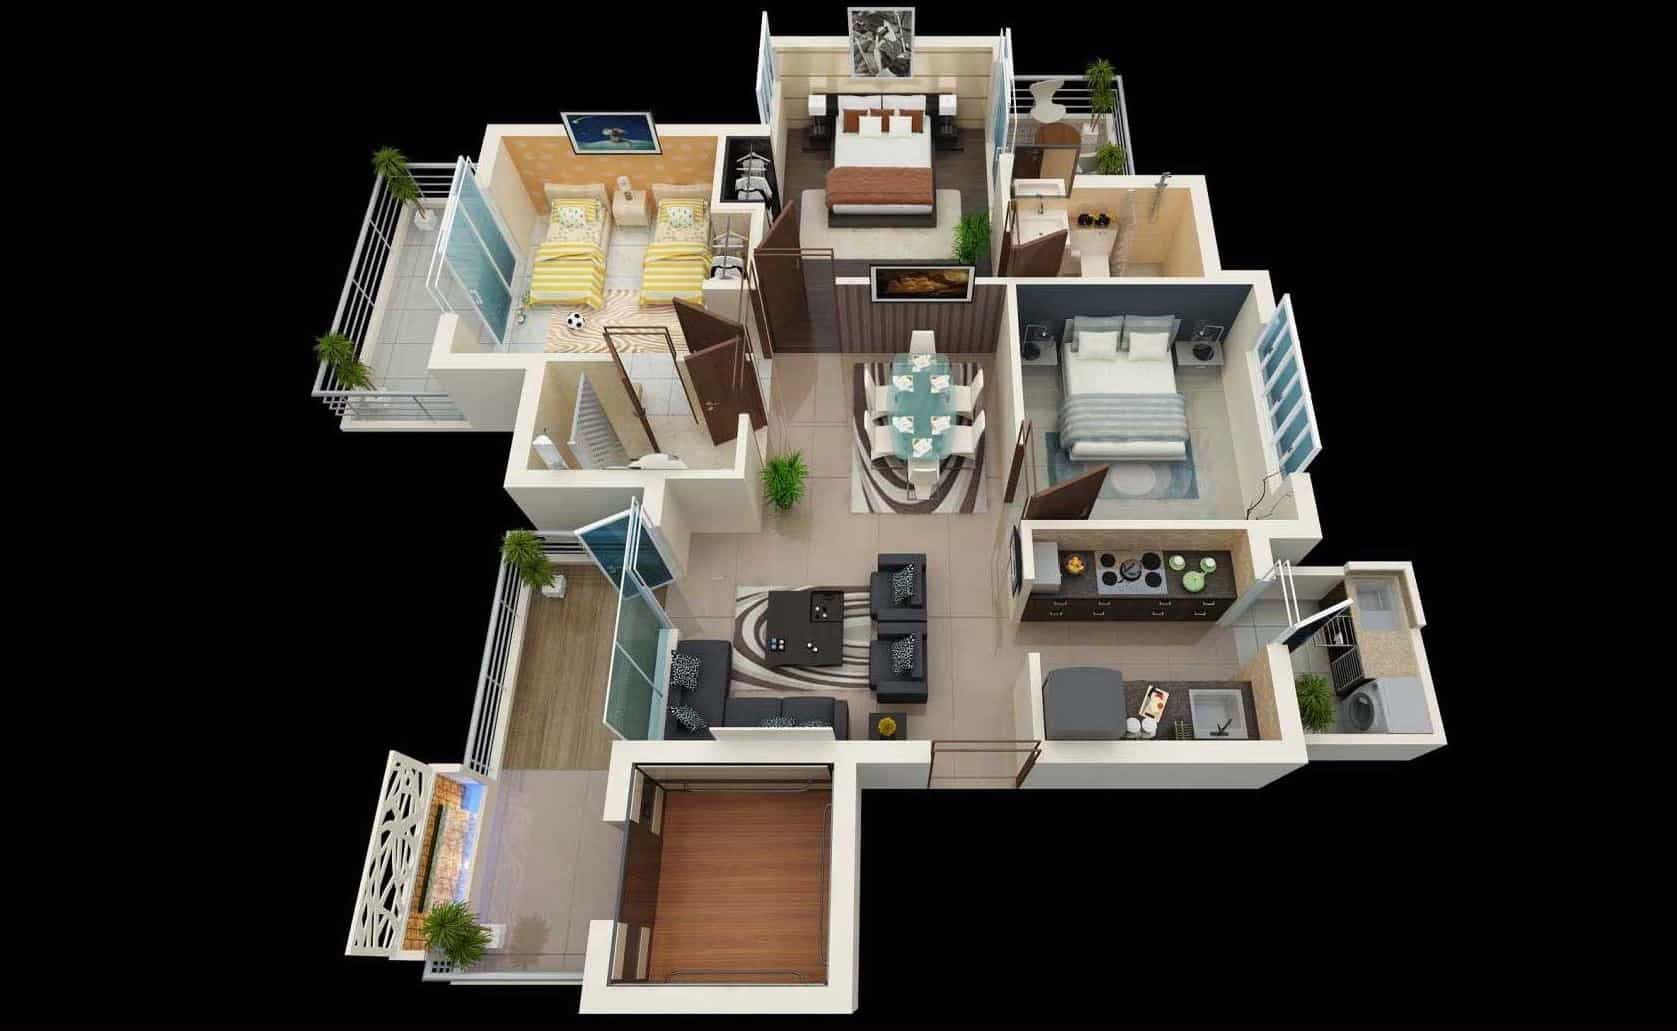 Open Space House Floor Plans With 3 Bedroom And 2 Toilet 3d Layout (Image 10 of 11)